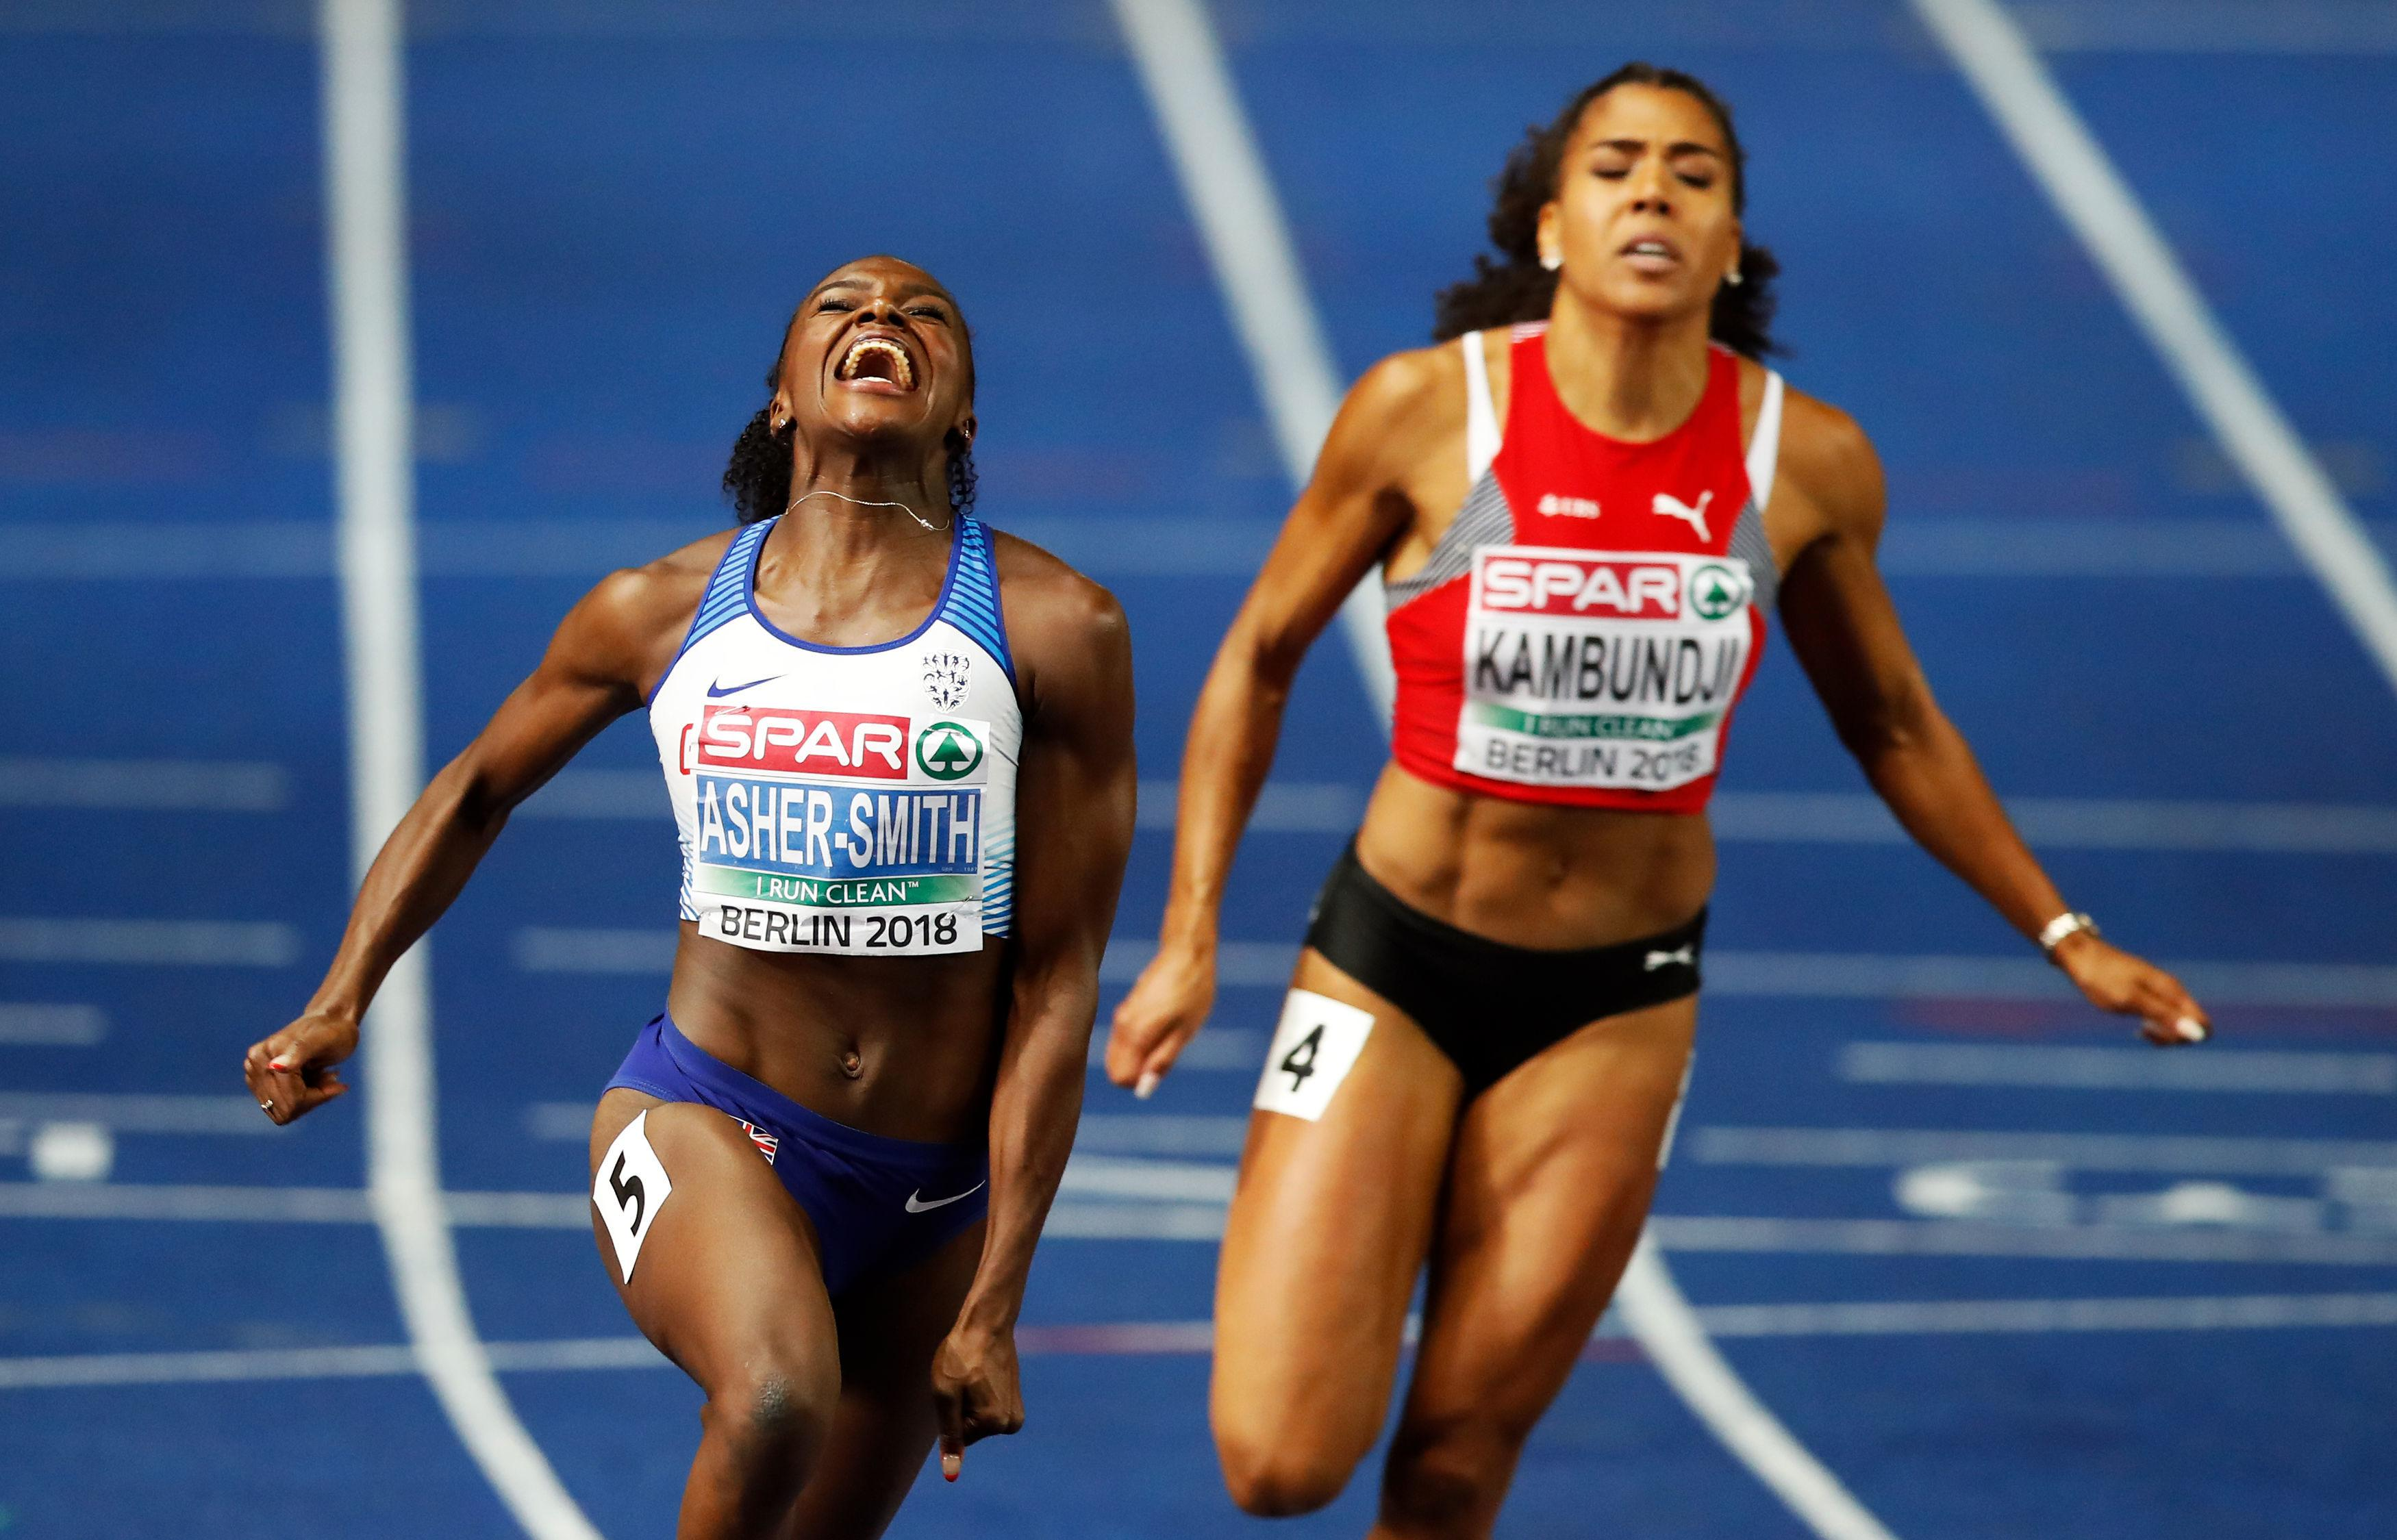 Asher-Smith set two national records and two world leading times in Berlin